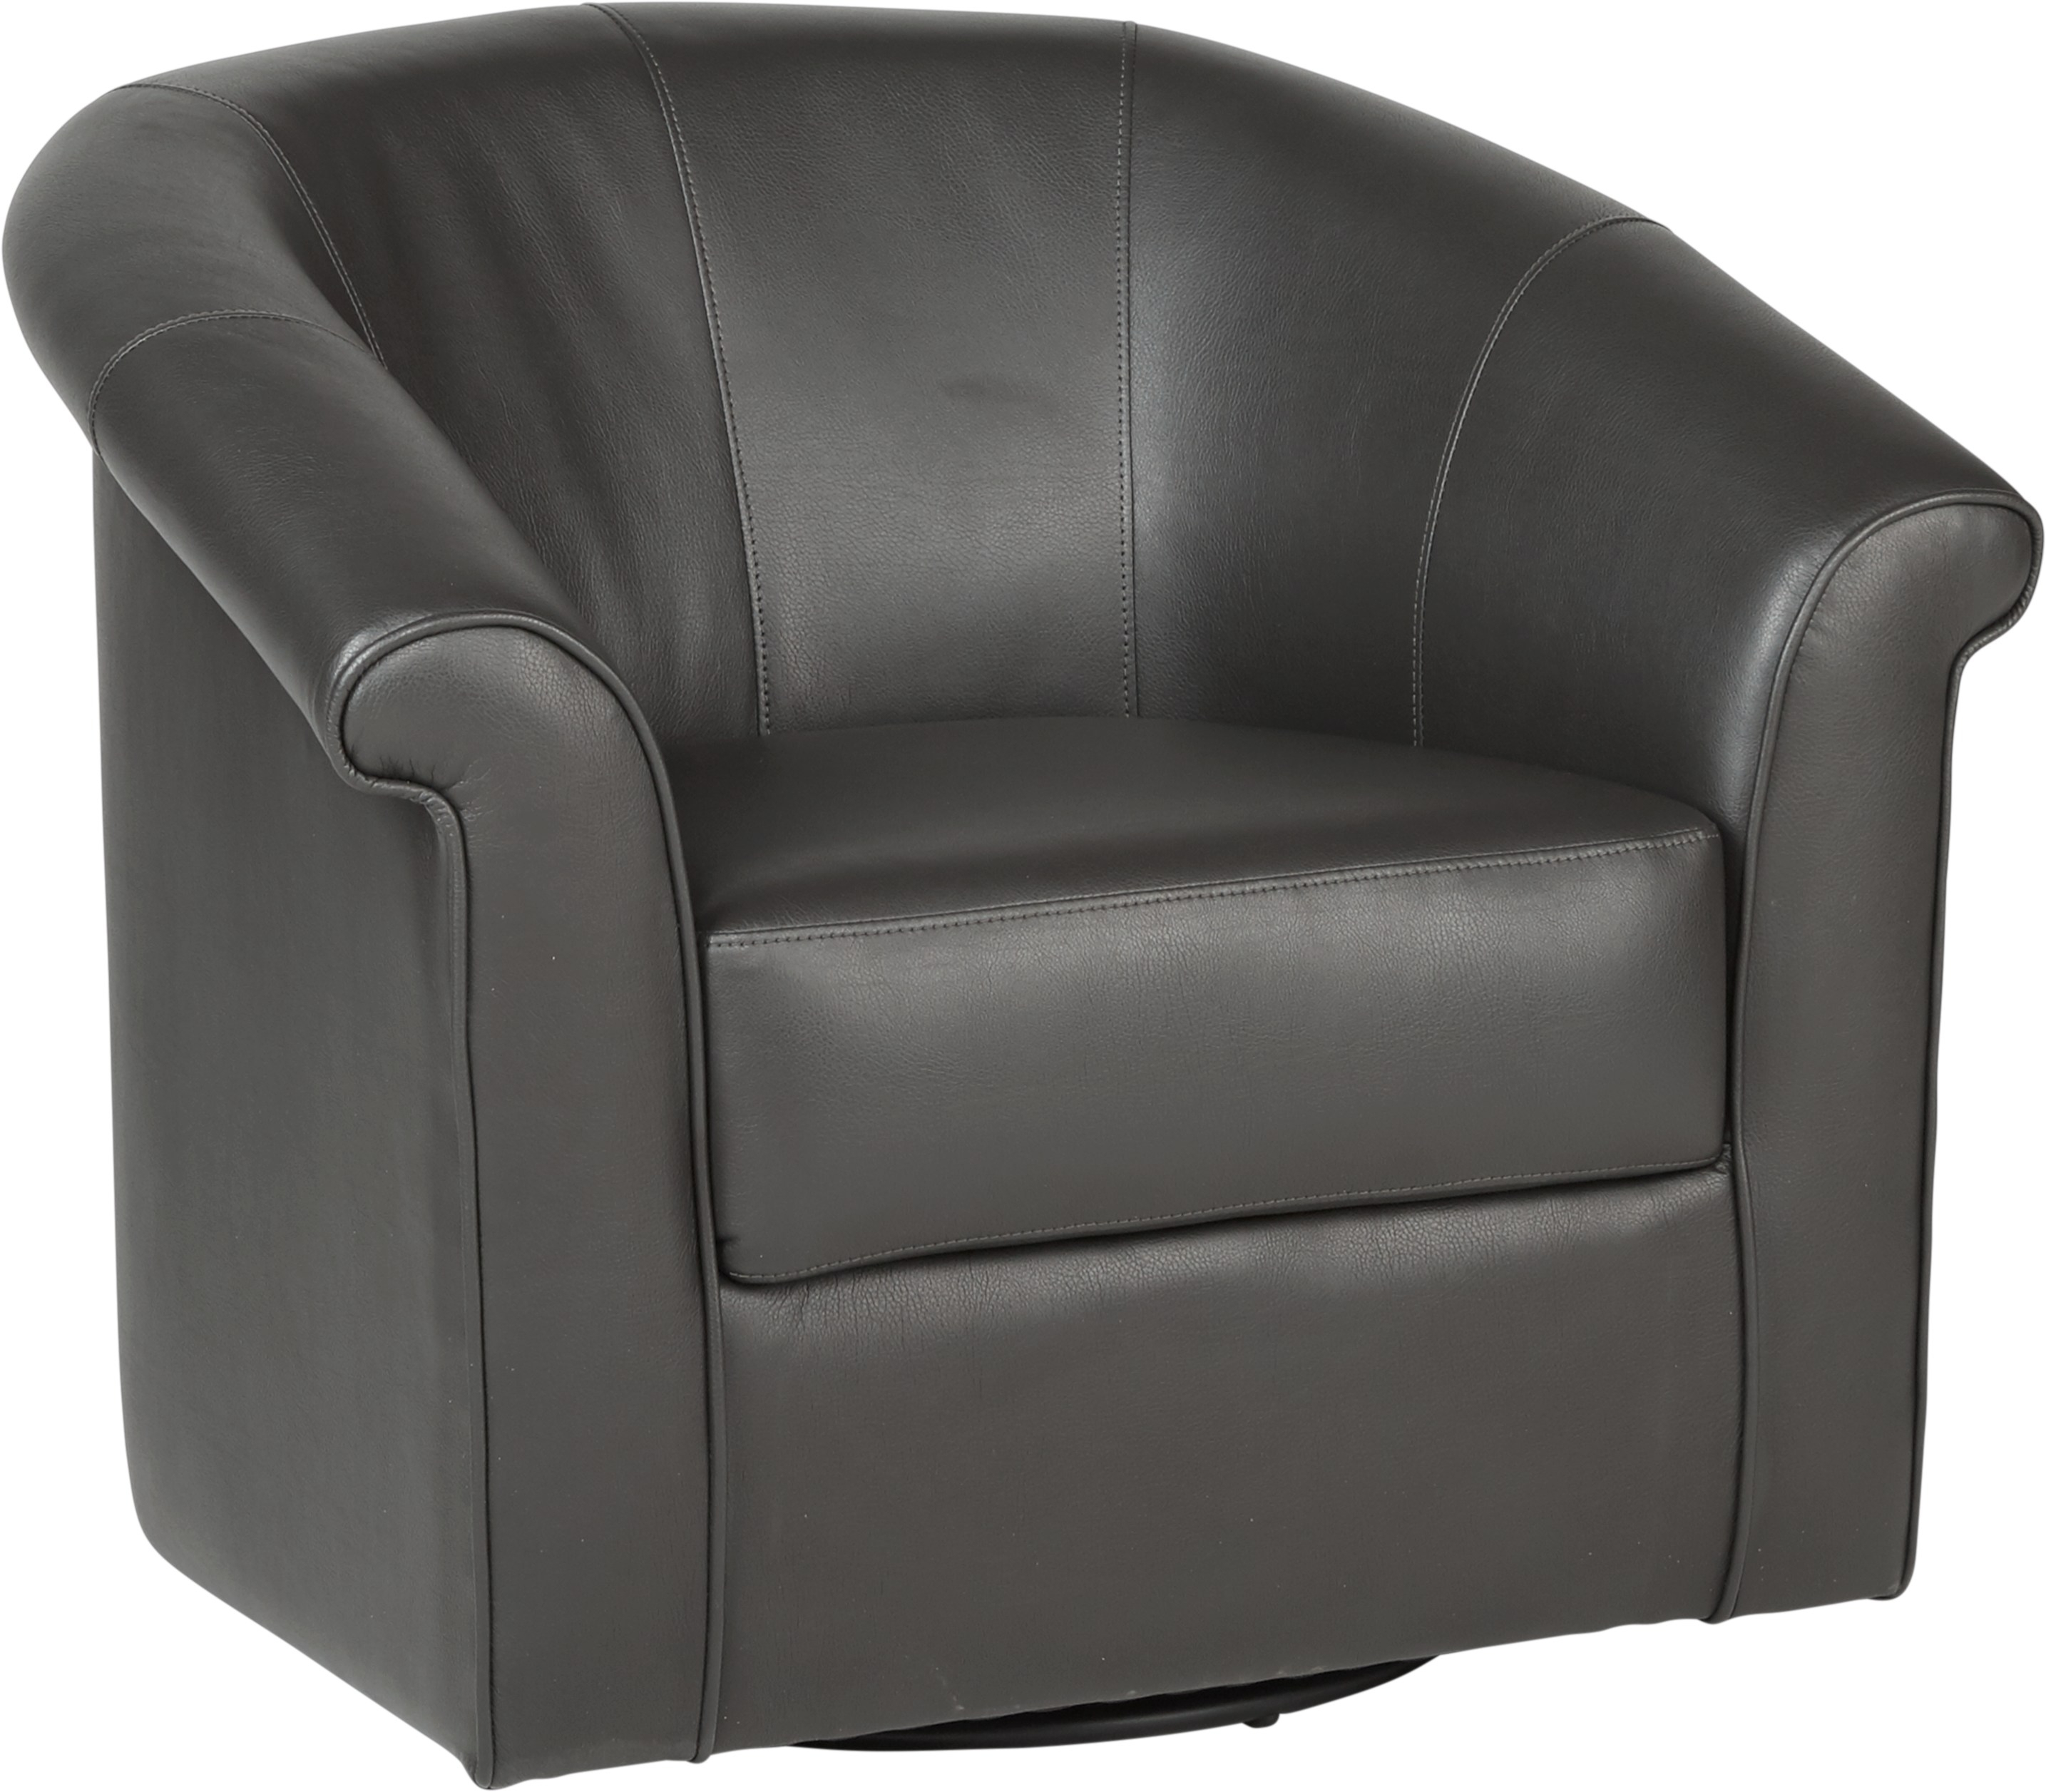 Benning Charcoal Swivel Chair – Chairs (Black) In Charcoal Swivel Chairs (View 10 of 20)